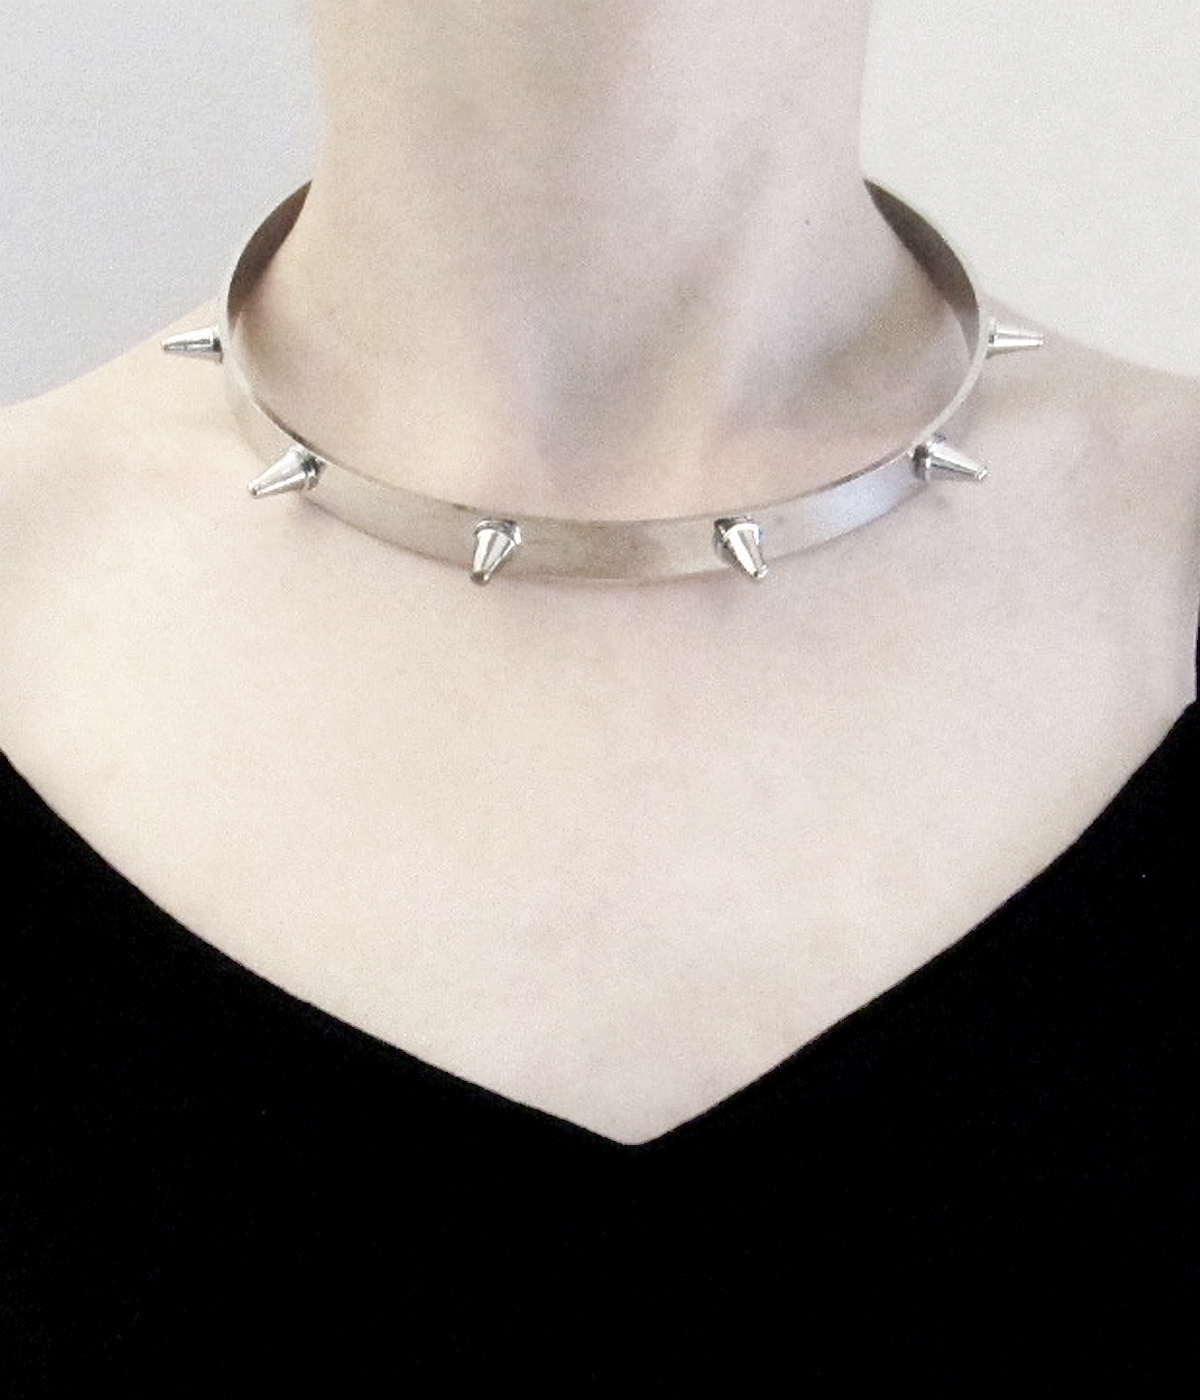 COLLAR PUNK DE METAL CON PINCHOS